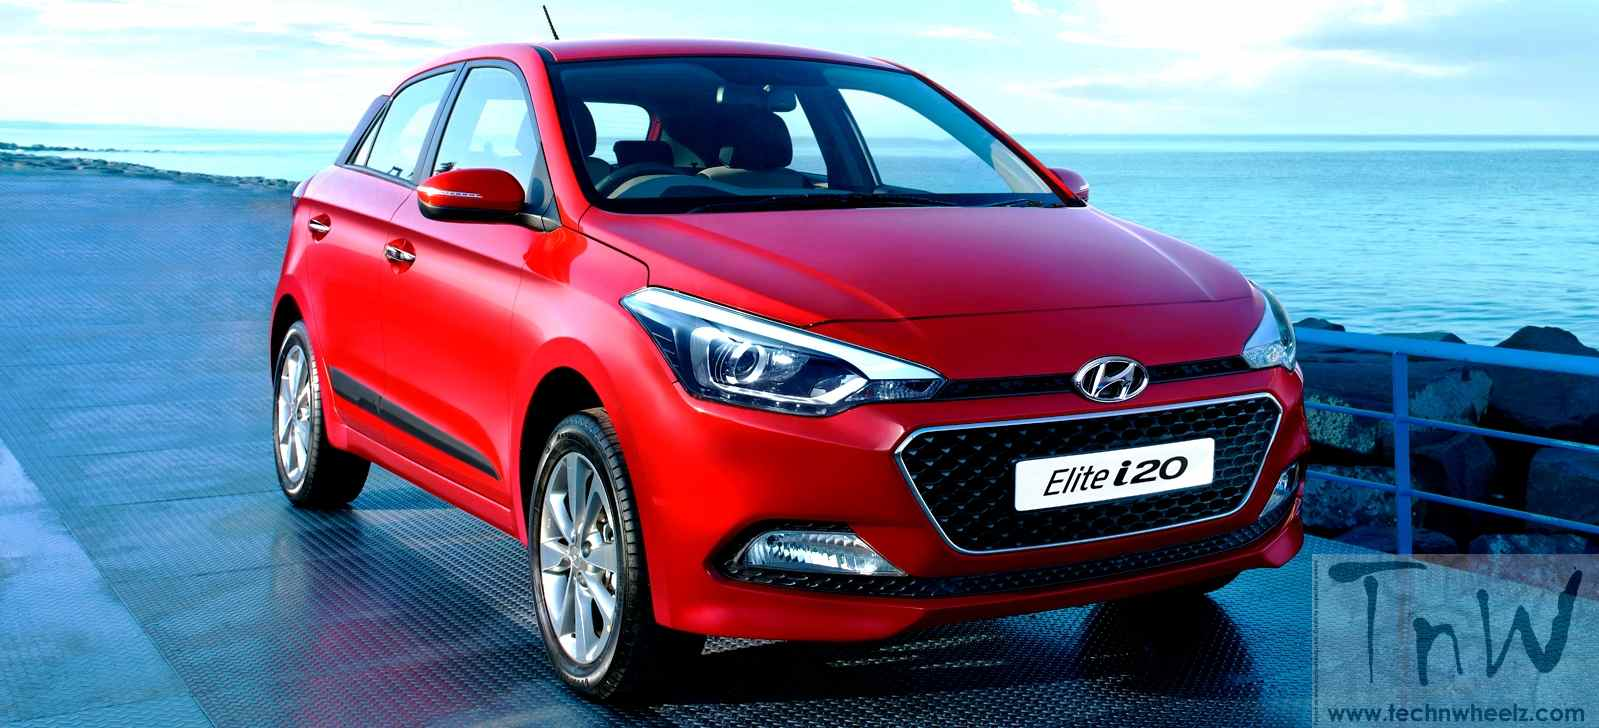 2016 hyundai elite i20 loaded with new features baleno effect tech 39 n wheelz. Black Bedroom Furniture Sets. Home Design Ideas